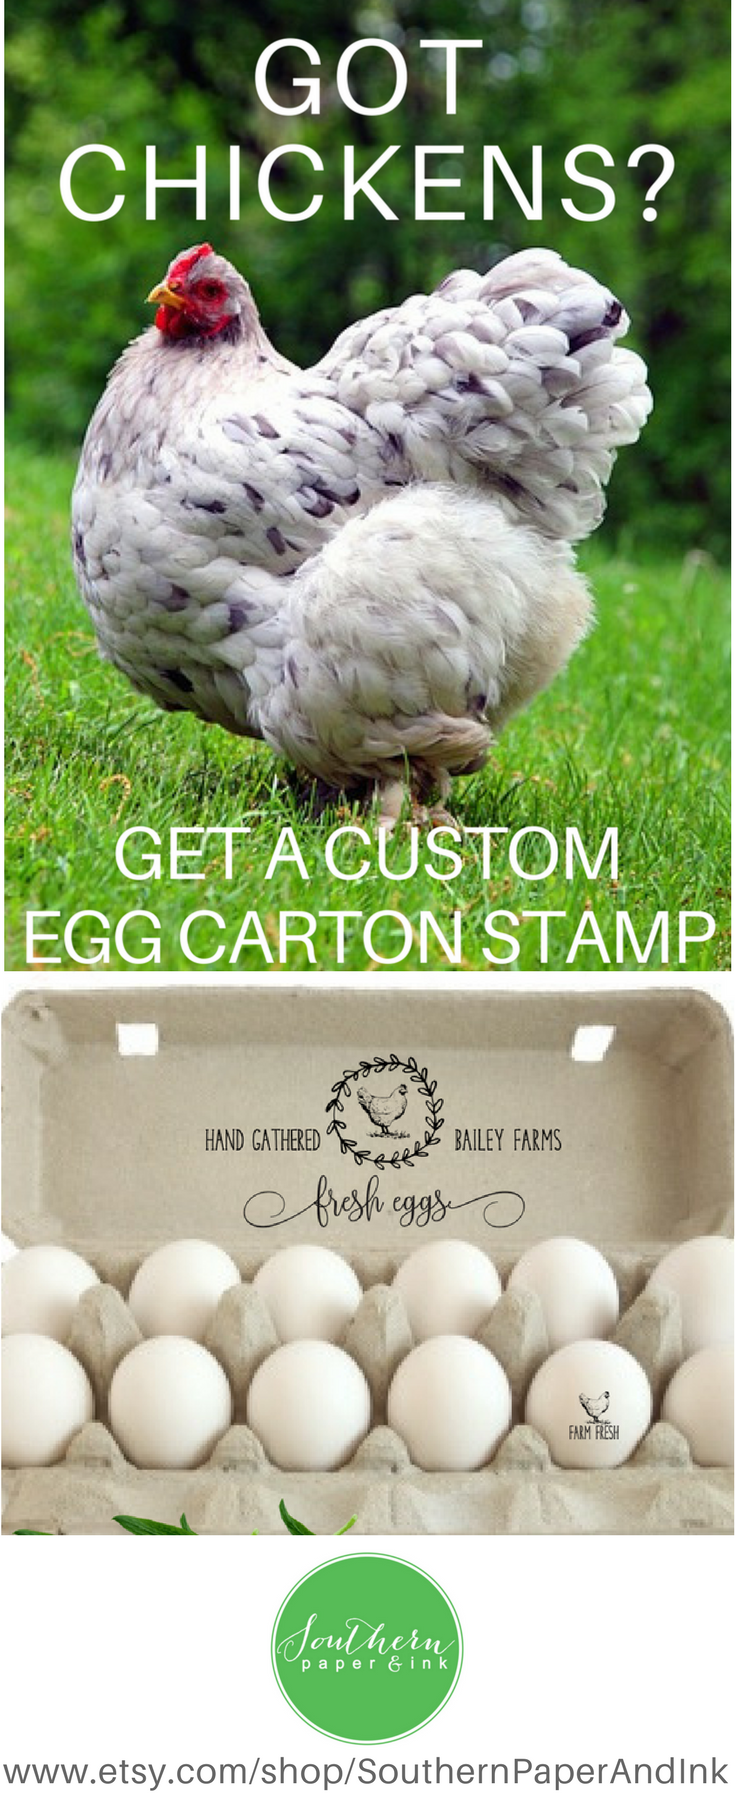 A Personalized Chicken Egg Carton Stamp Is Great Idea For Labeling And Personalizing The Eggs